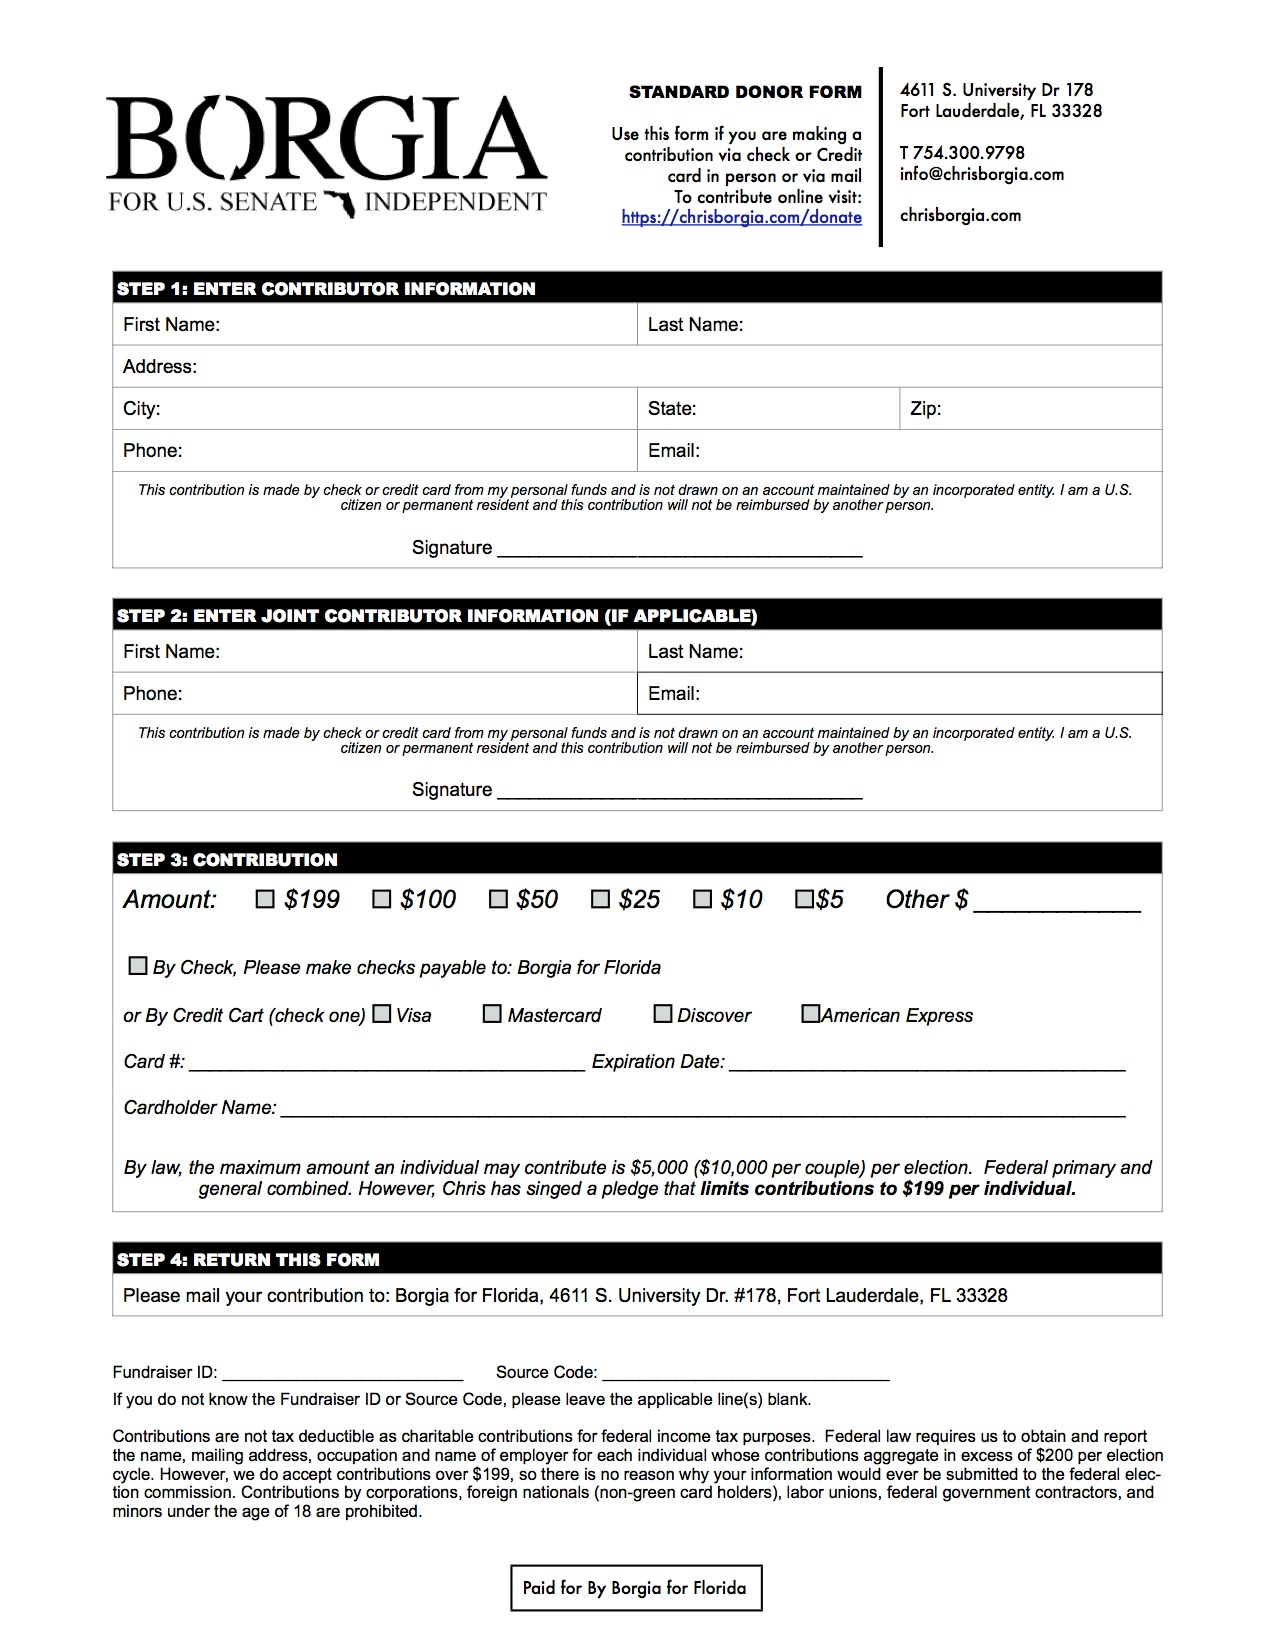 Donation form for Mail In